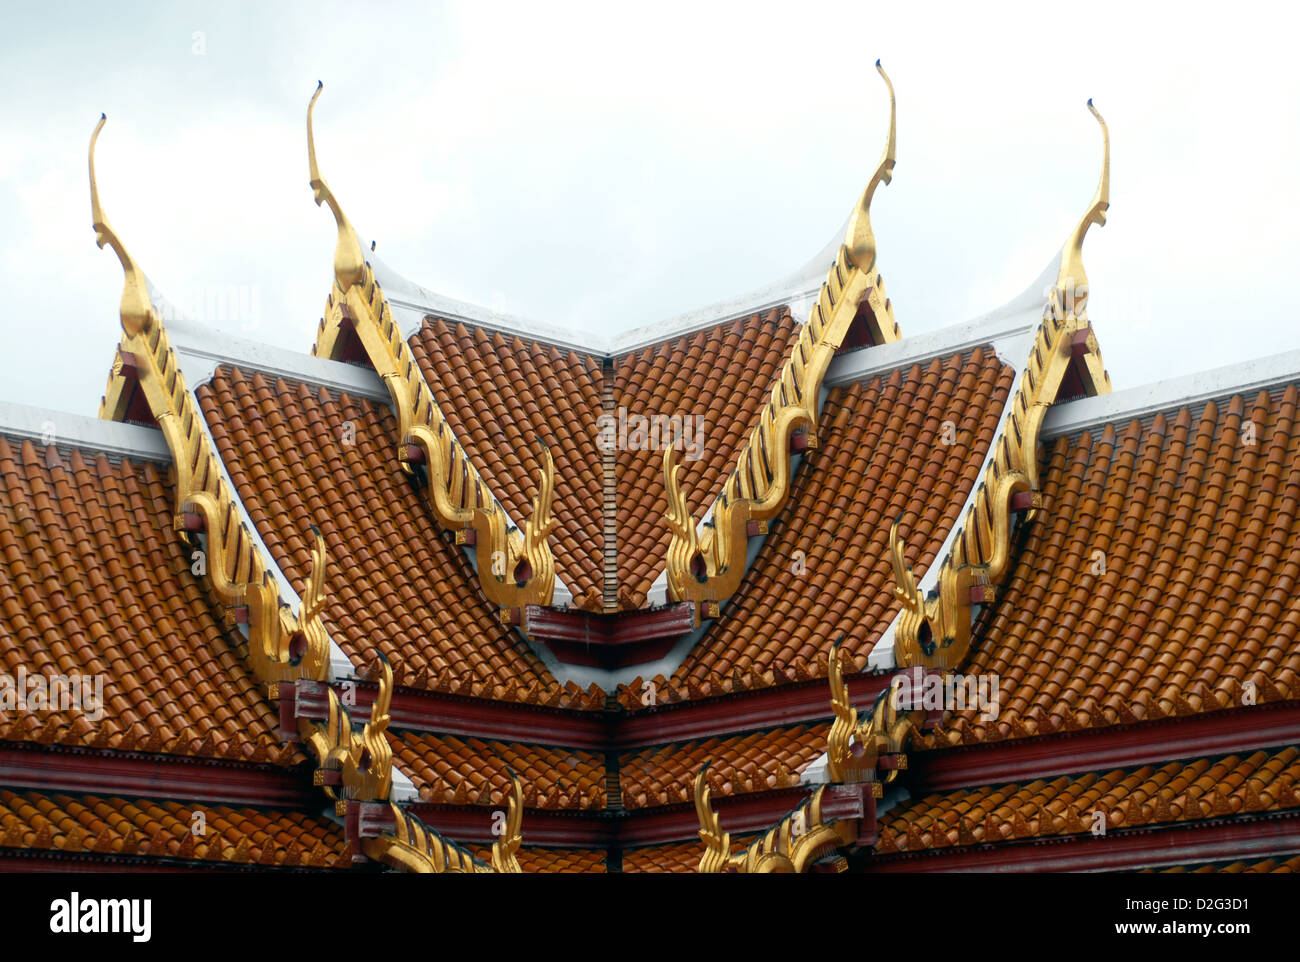 Roof top of a temple in bangkok with guilded bai raka naga fins and feathers of Garuda and the serpentine like lamyong - Stock Image